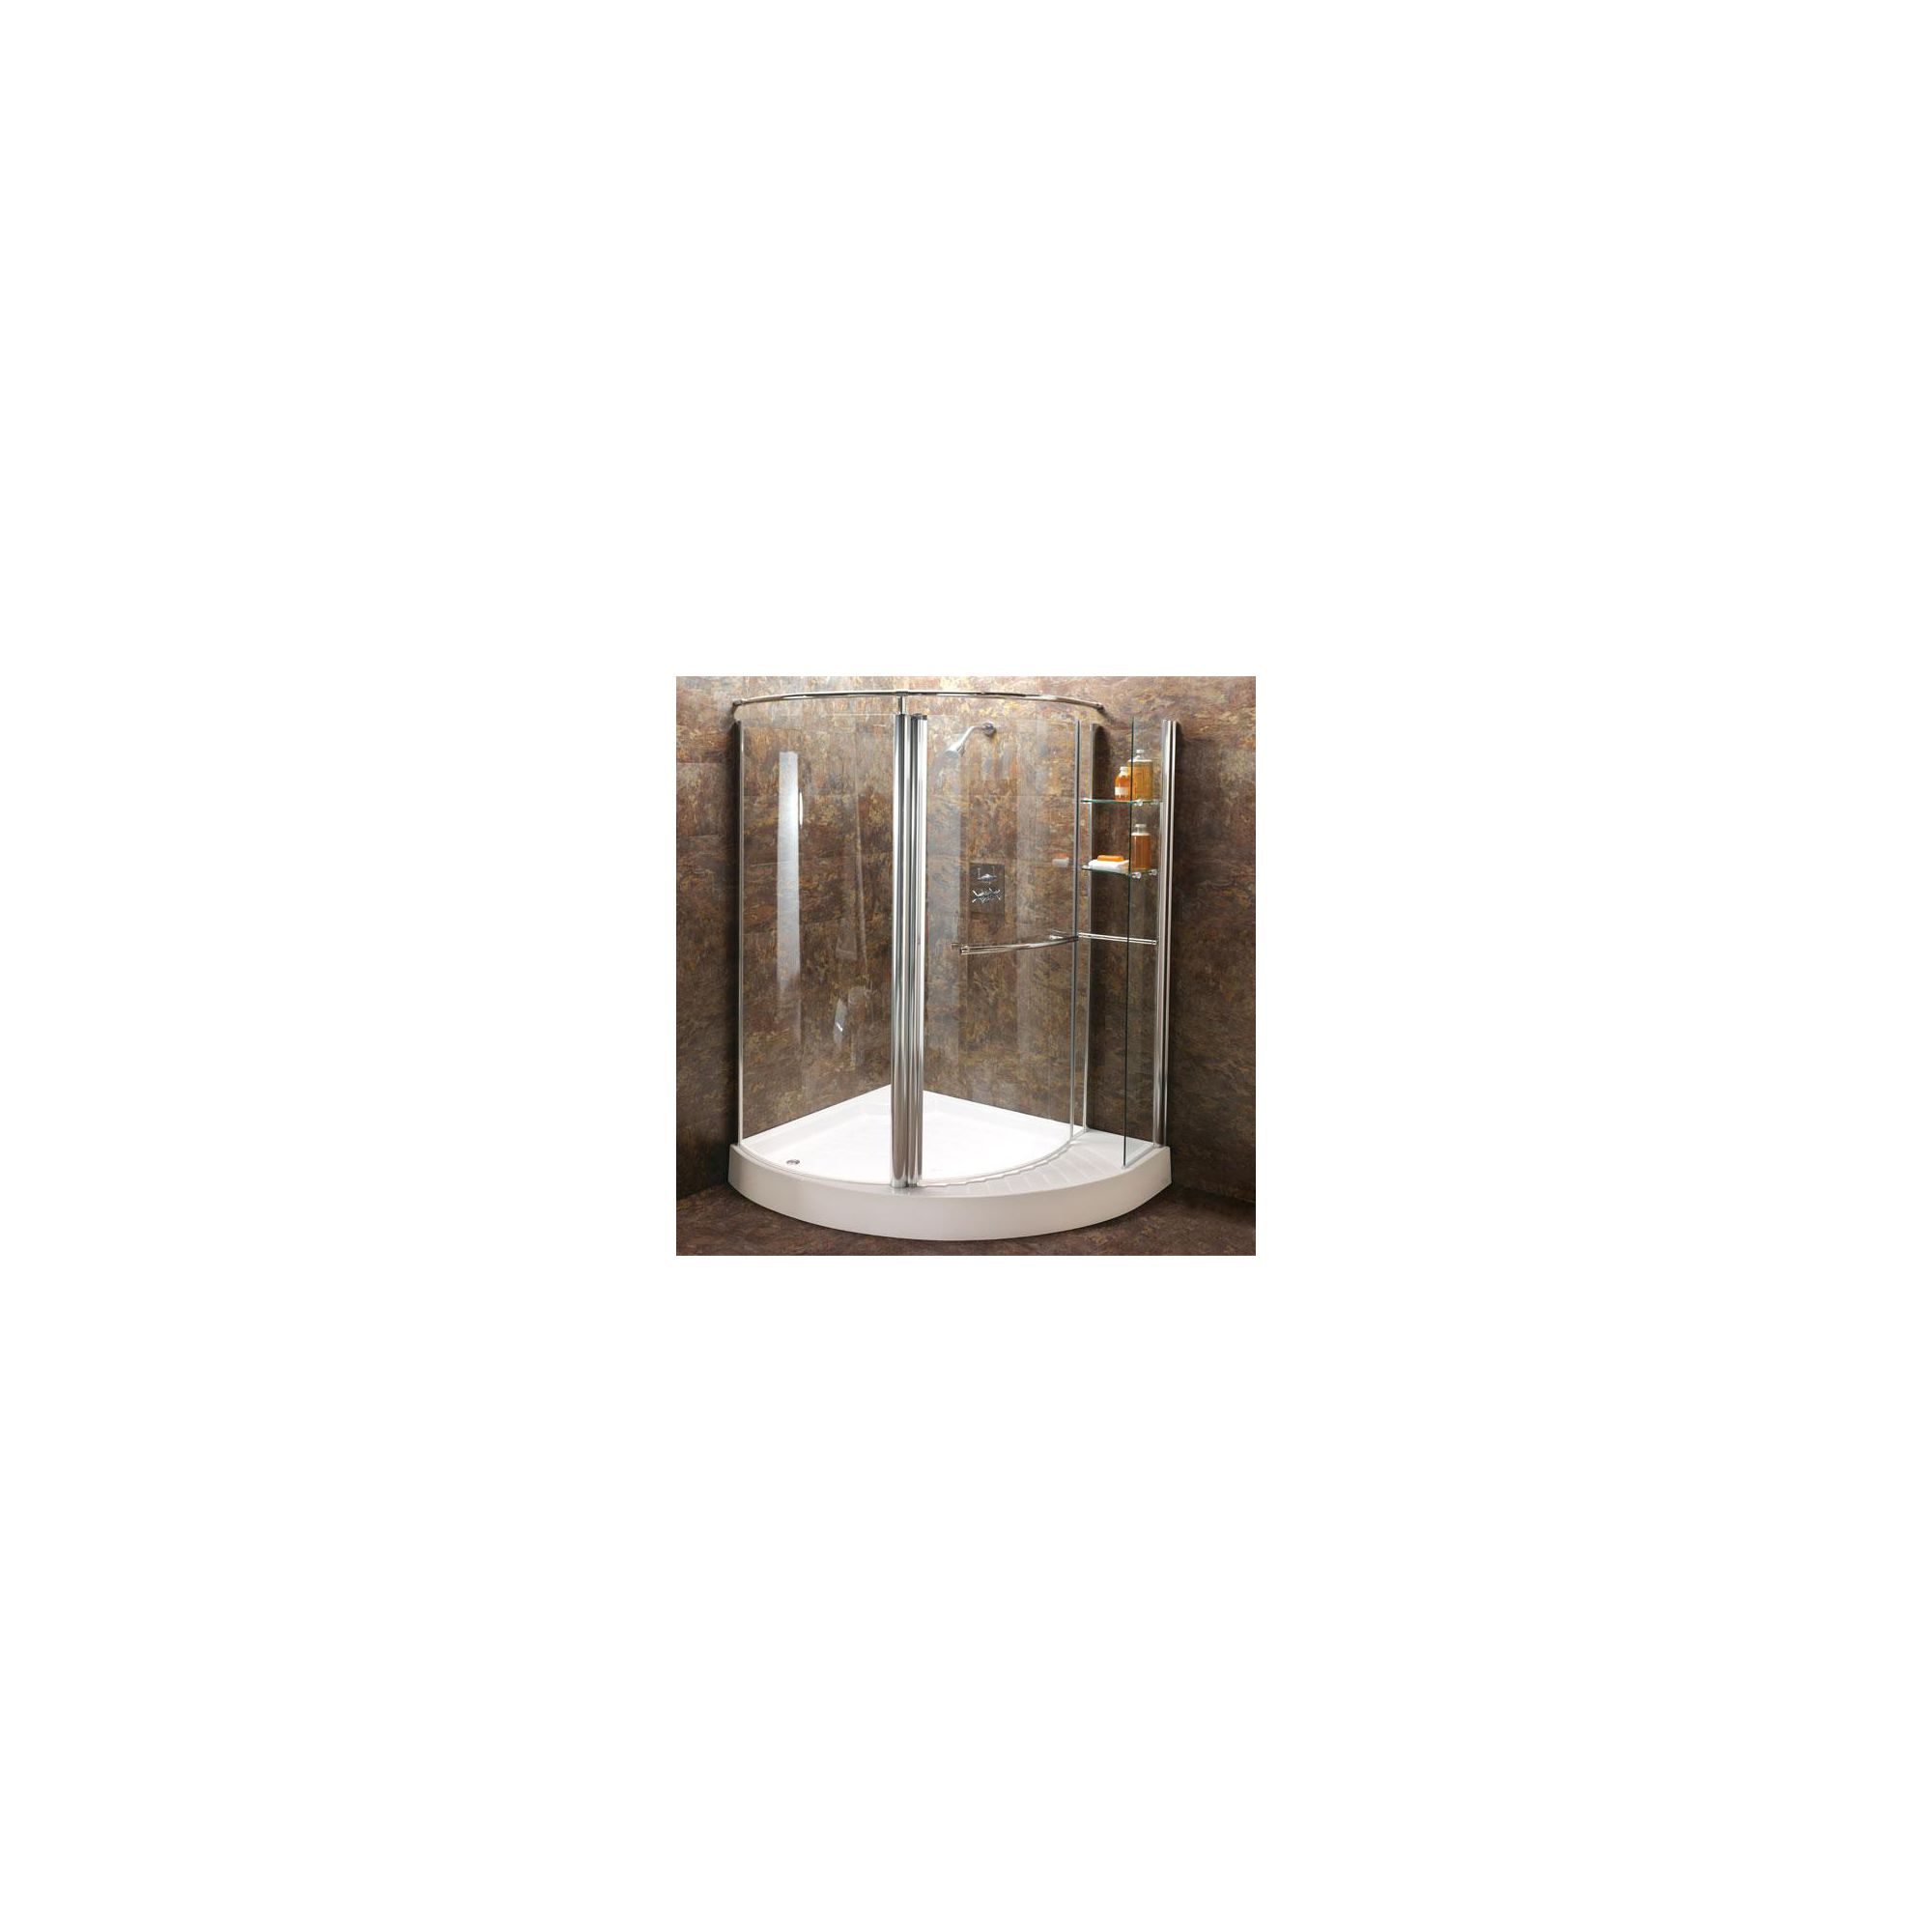 Balterley Offset Quadrant Shower Door, 1250mm x 1000mm Wide, Left Handed, 6mm Glass at Tesco Direct